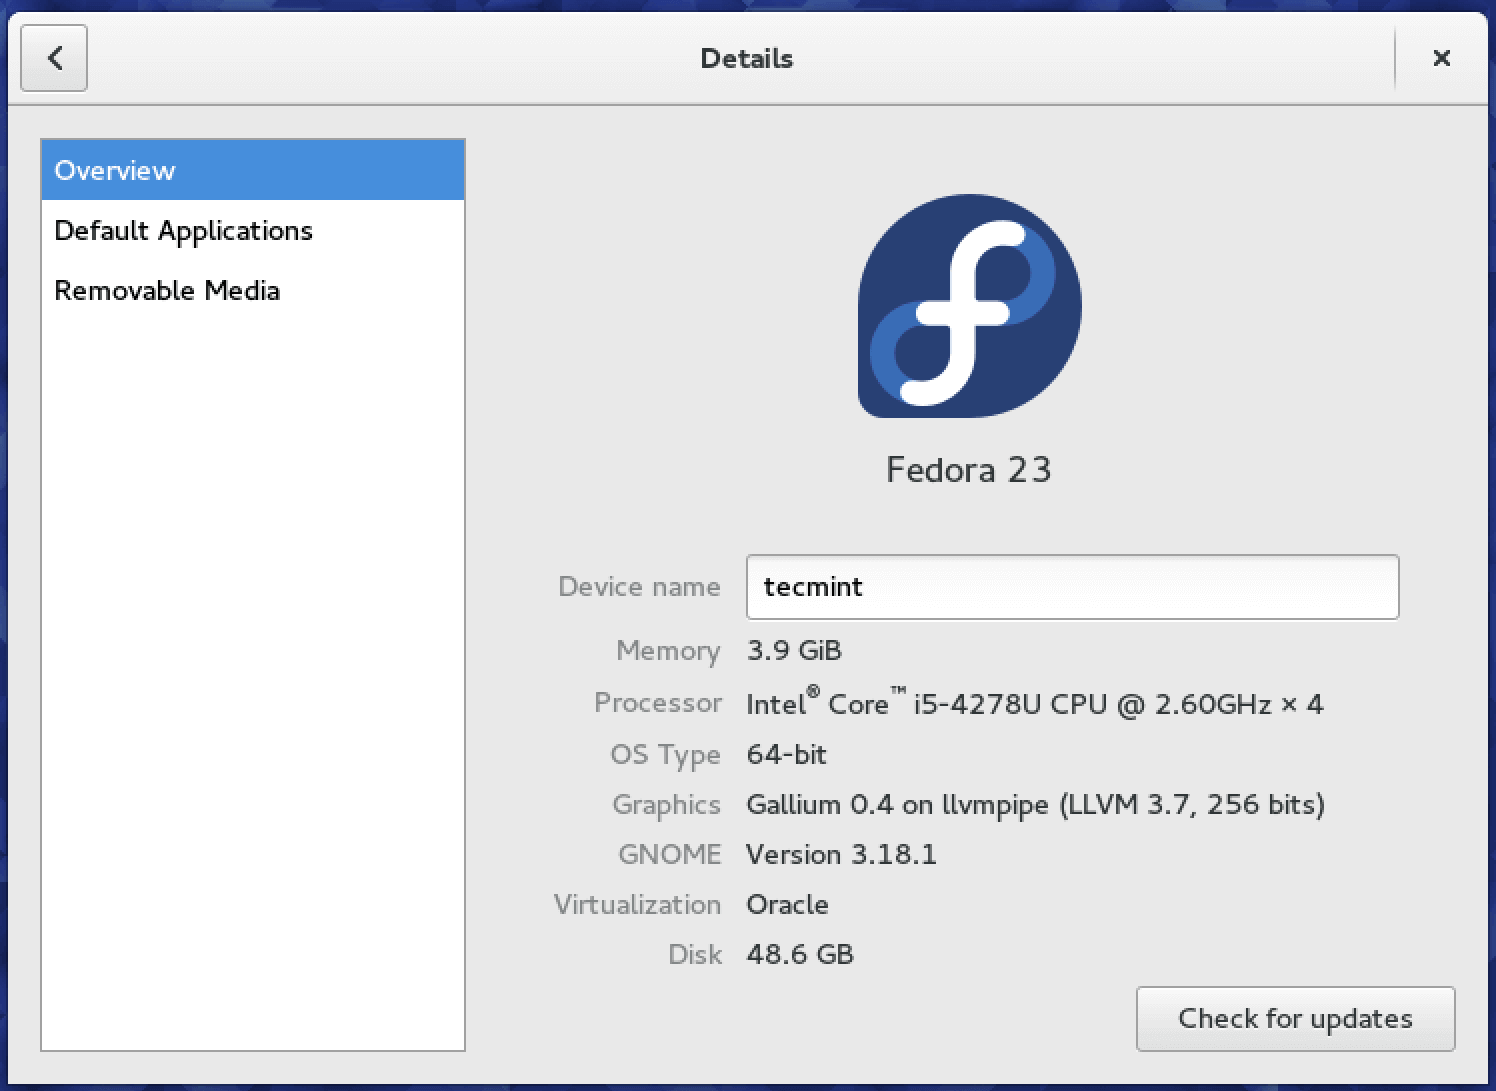 Upgraded to Fedora 23